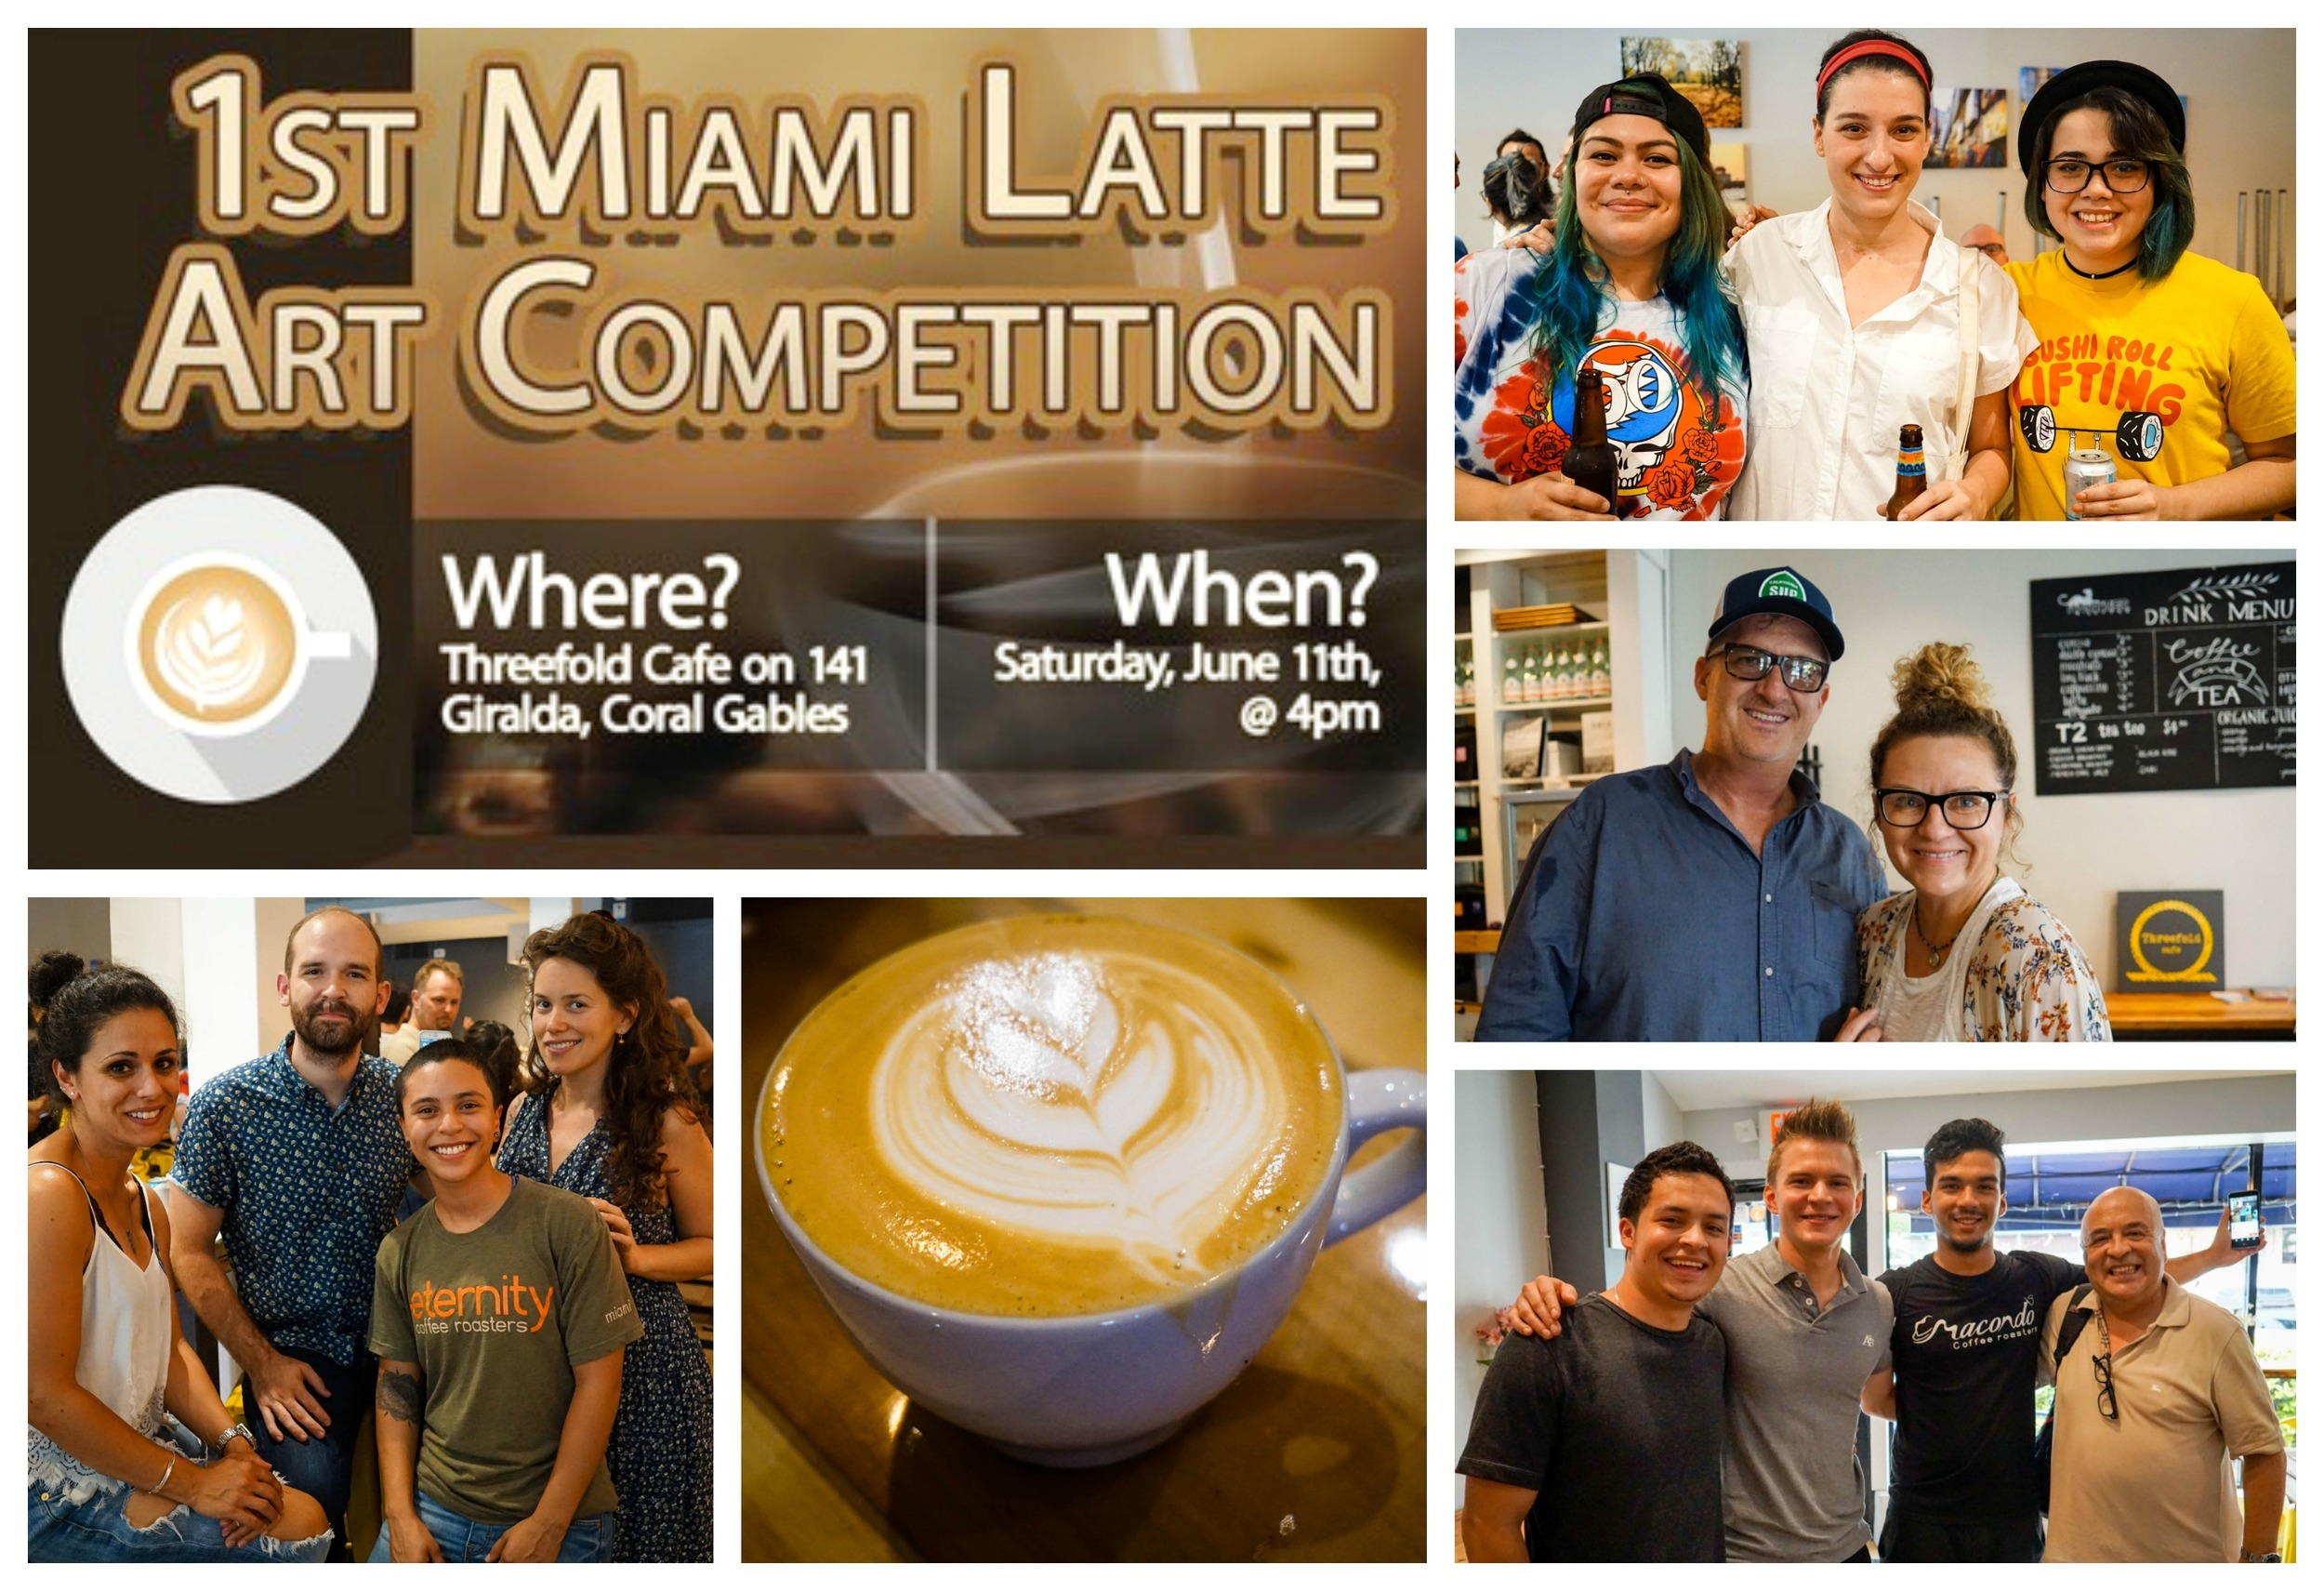 Miami's First Latte Art Competition at Threefold Cafe